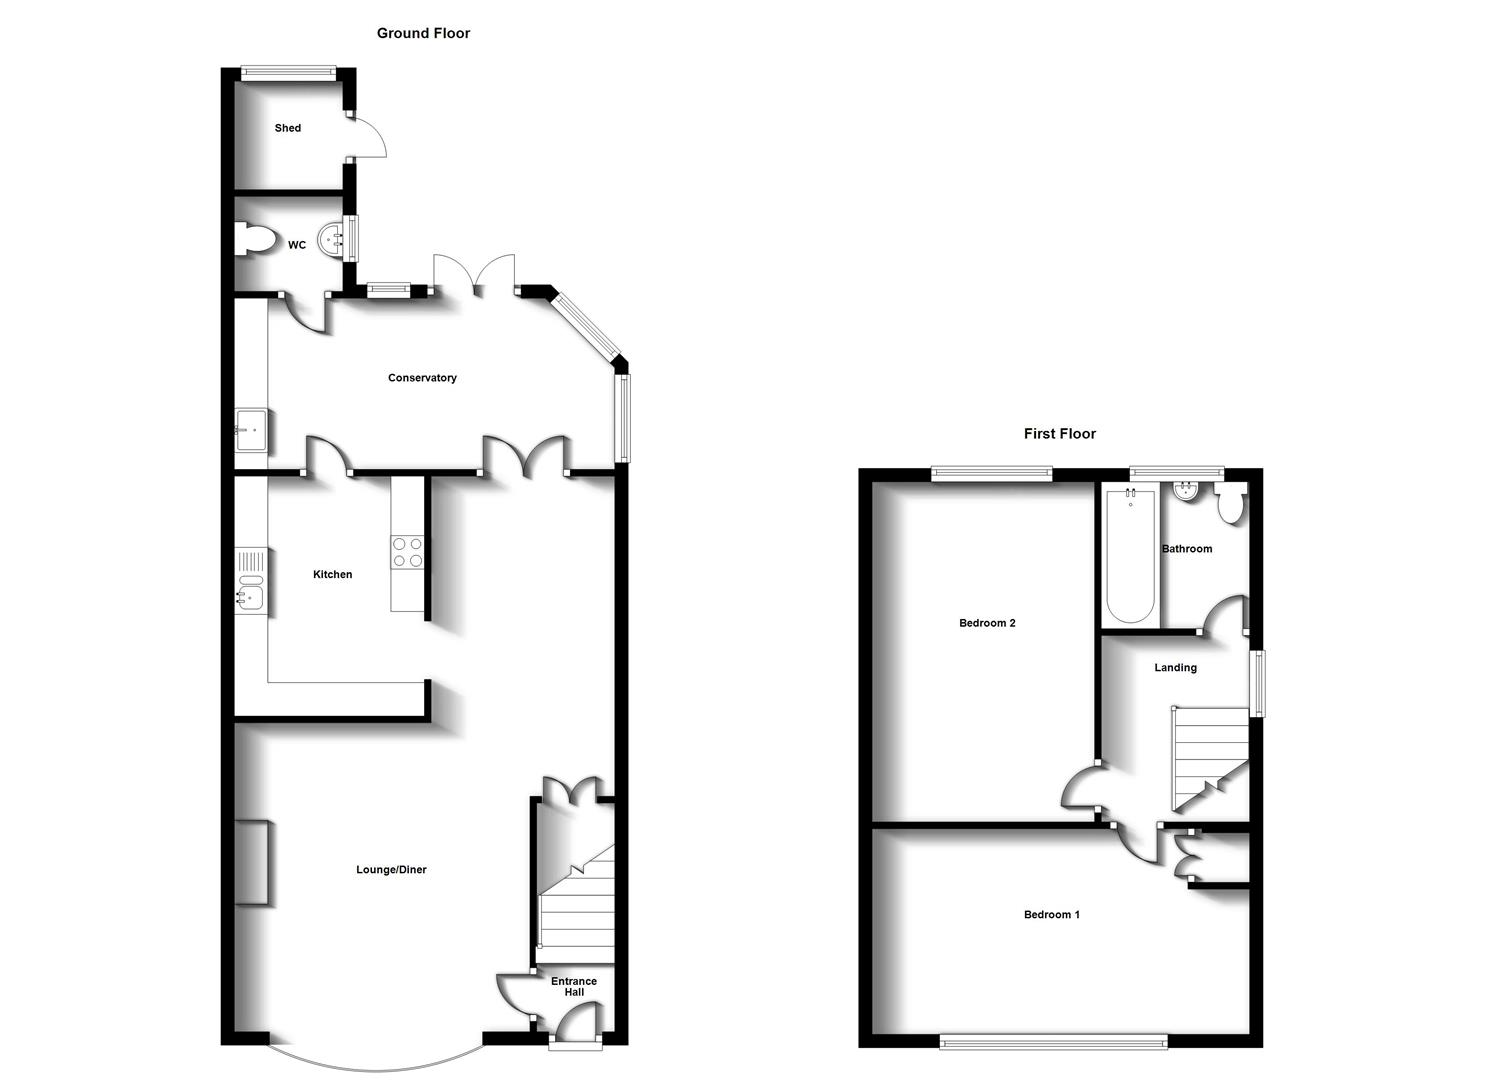 Floorplans For Croft Close, Stretton On Dunsmore, Rugby